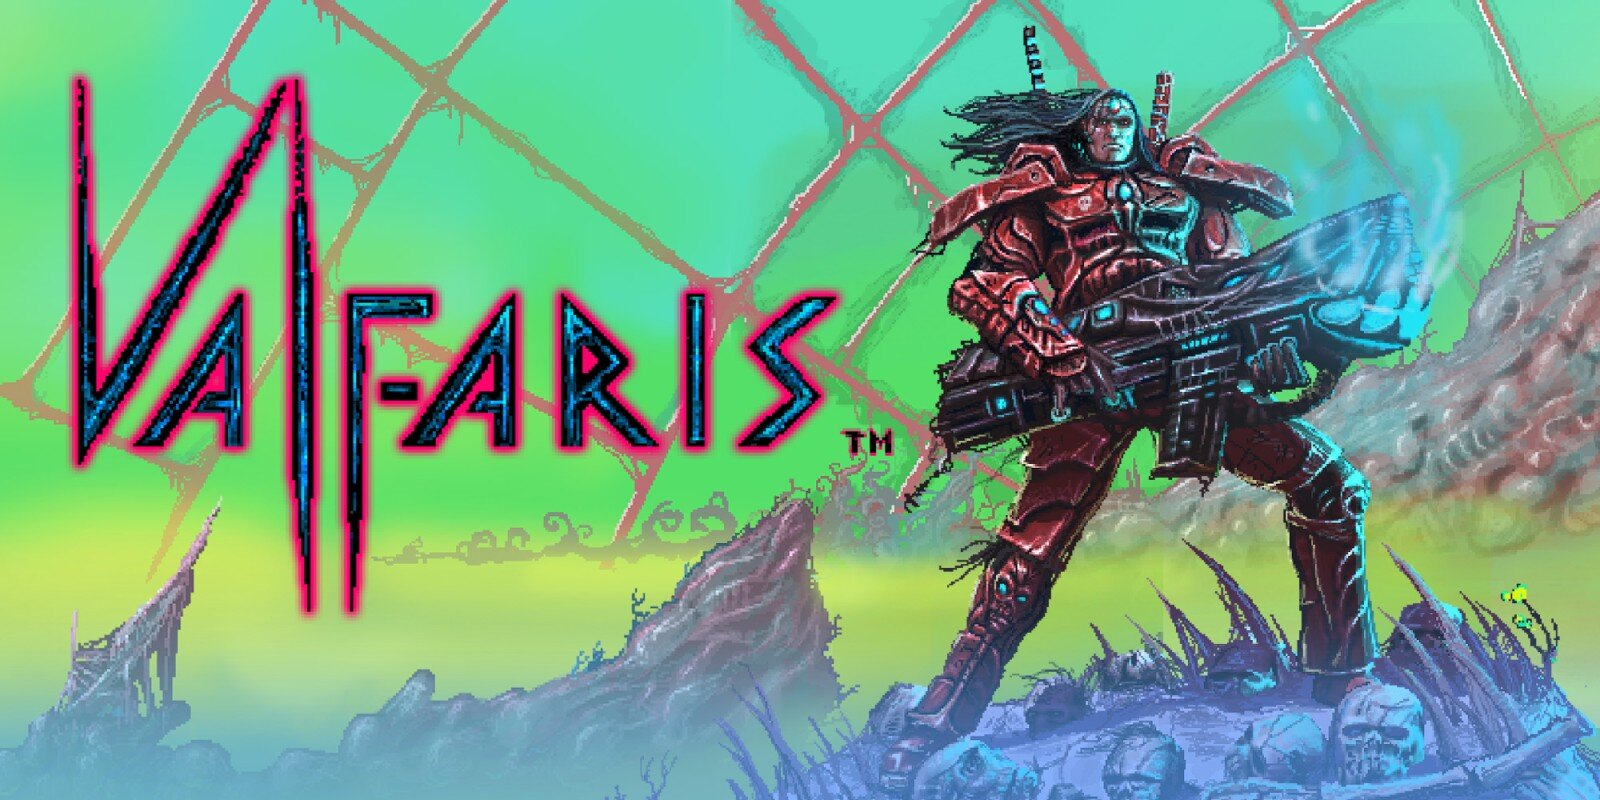 Valfaris - Sci-fi Metal on Pixel action from developer Steel Mantis!